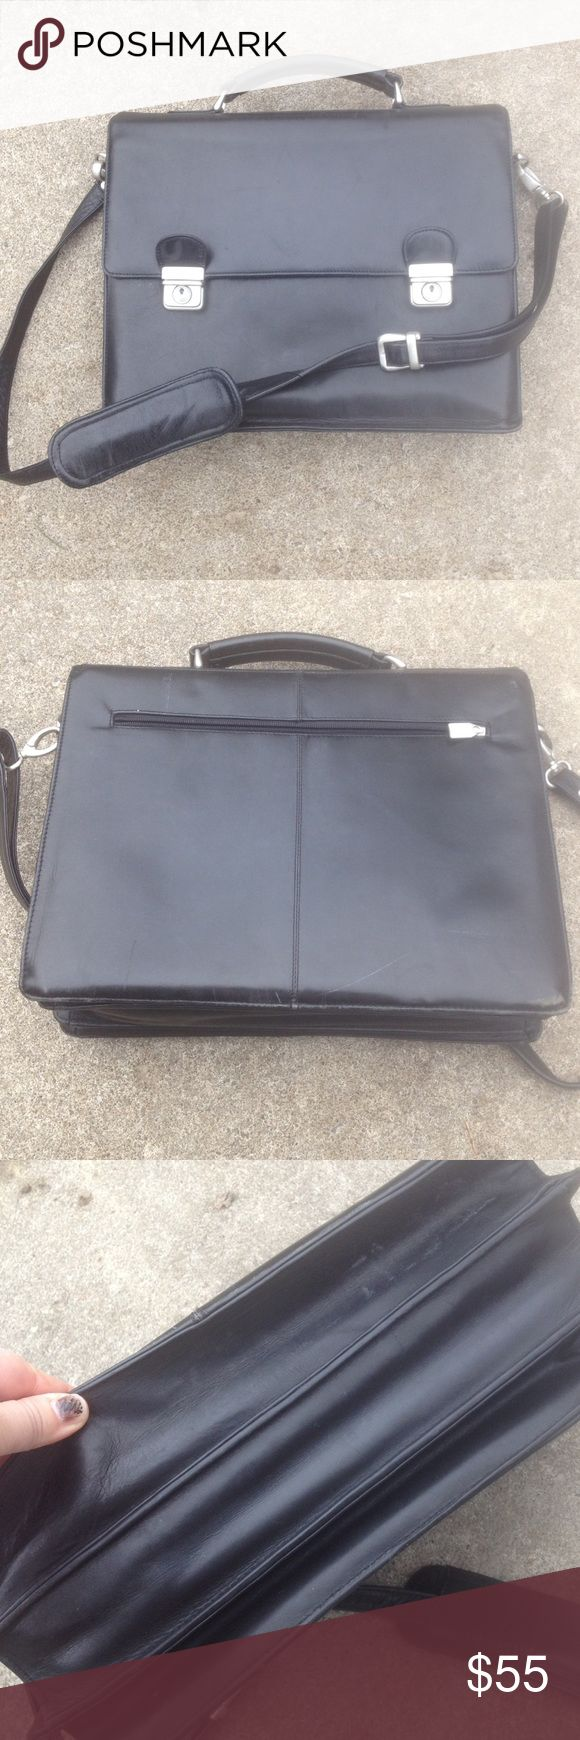 Wilson's Black Leather Briefcase Silver Hardware Wilson's Black Leather Briefcase Silver Hardware Multiple openings/sections Minor markings Great Condition Wilsons Leather Bags Laptop Bags